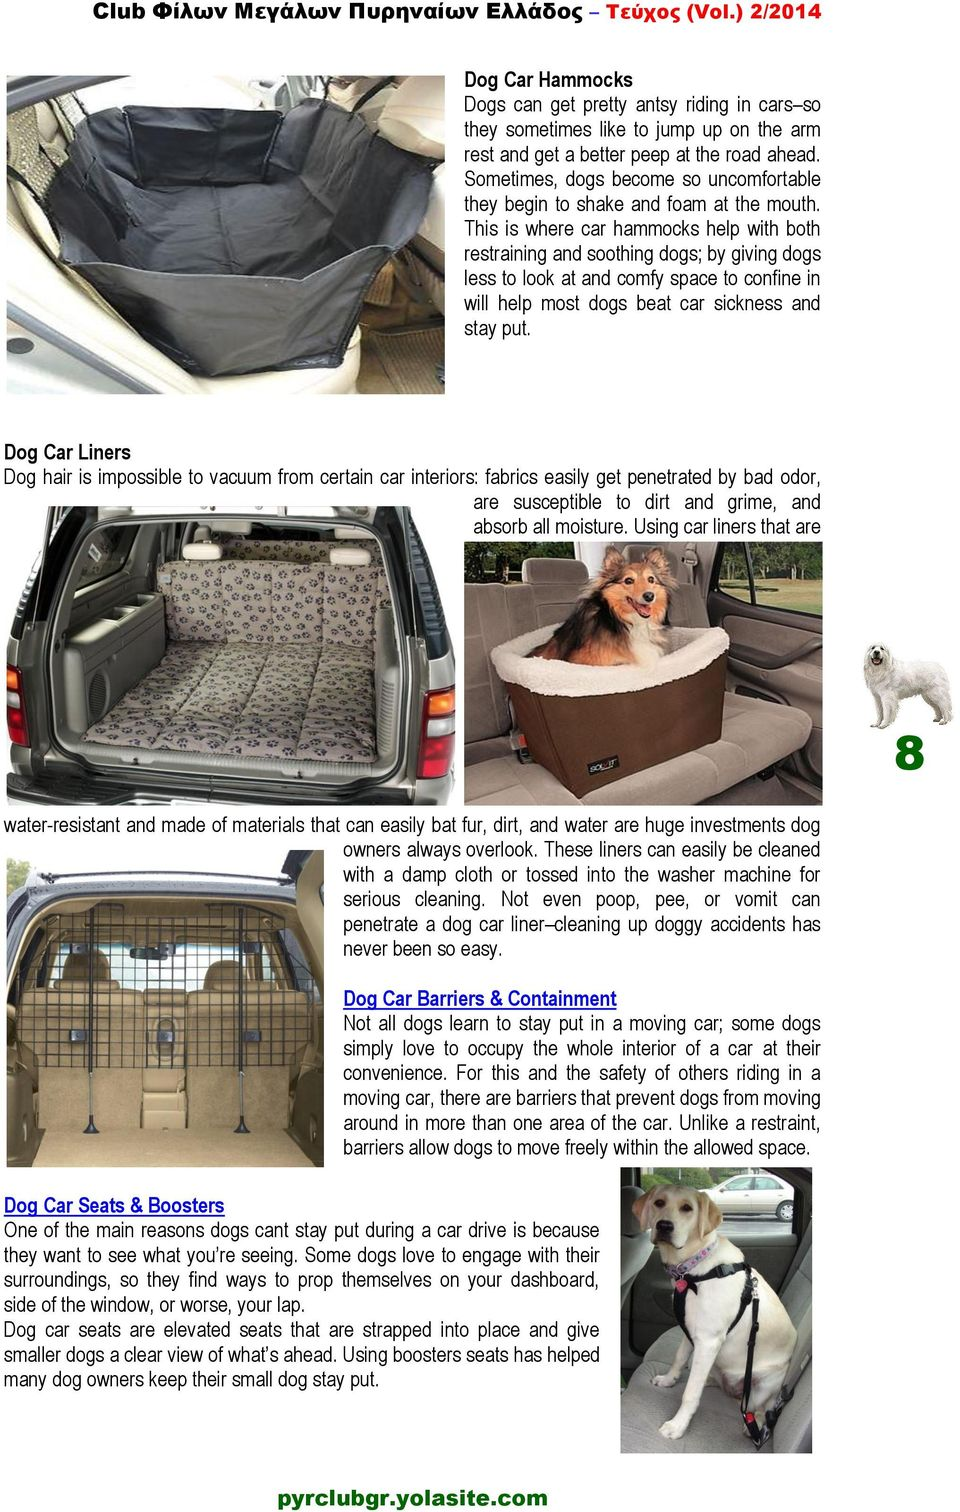 This is where car hammocks help with both restraining and soothing dogs; by giving dogs less to look at and comfy space to confine in will help most dogs beat car sickness and stay put.